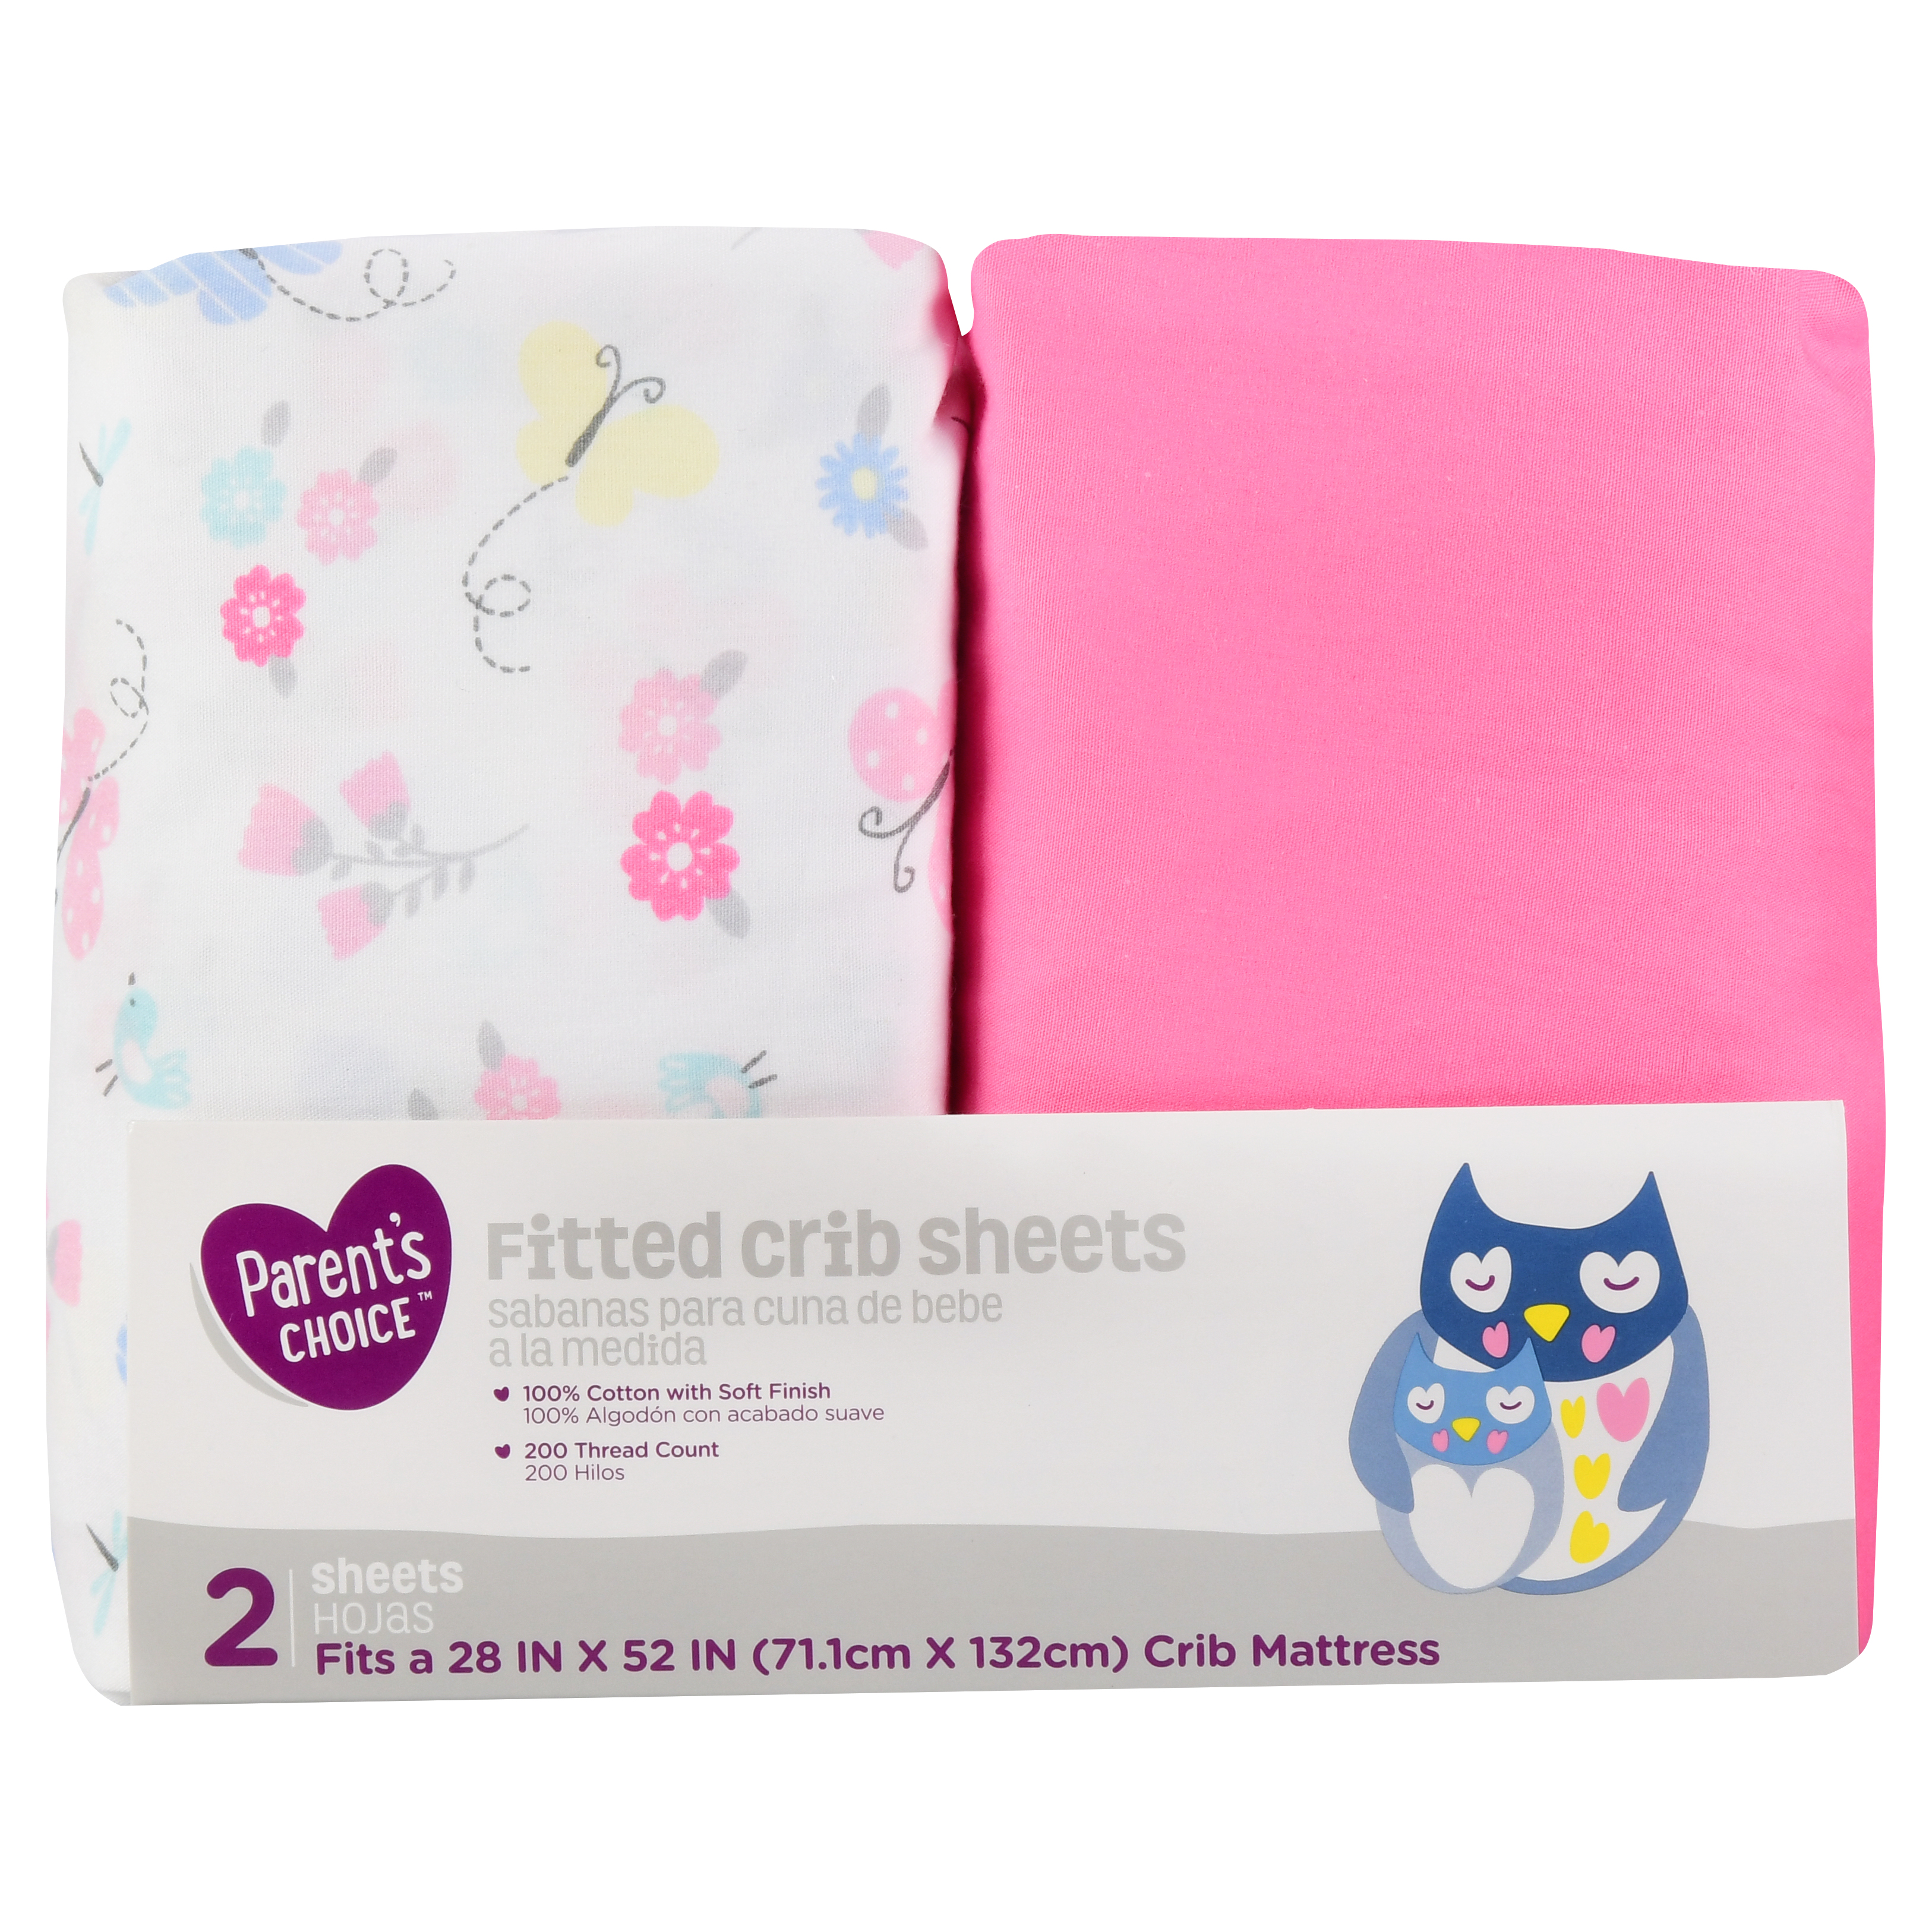 Parent's Choice Fitted Crib Sheets, Butterfly Print, 2 Pack